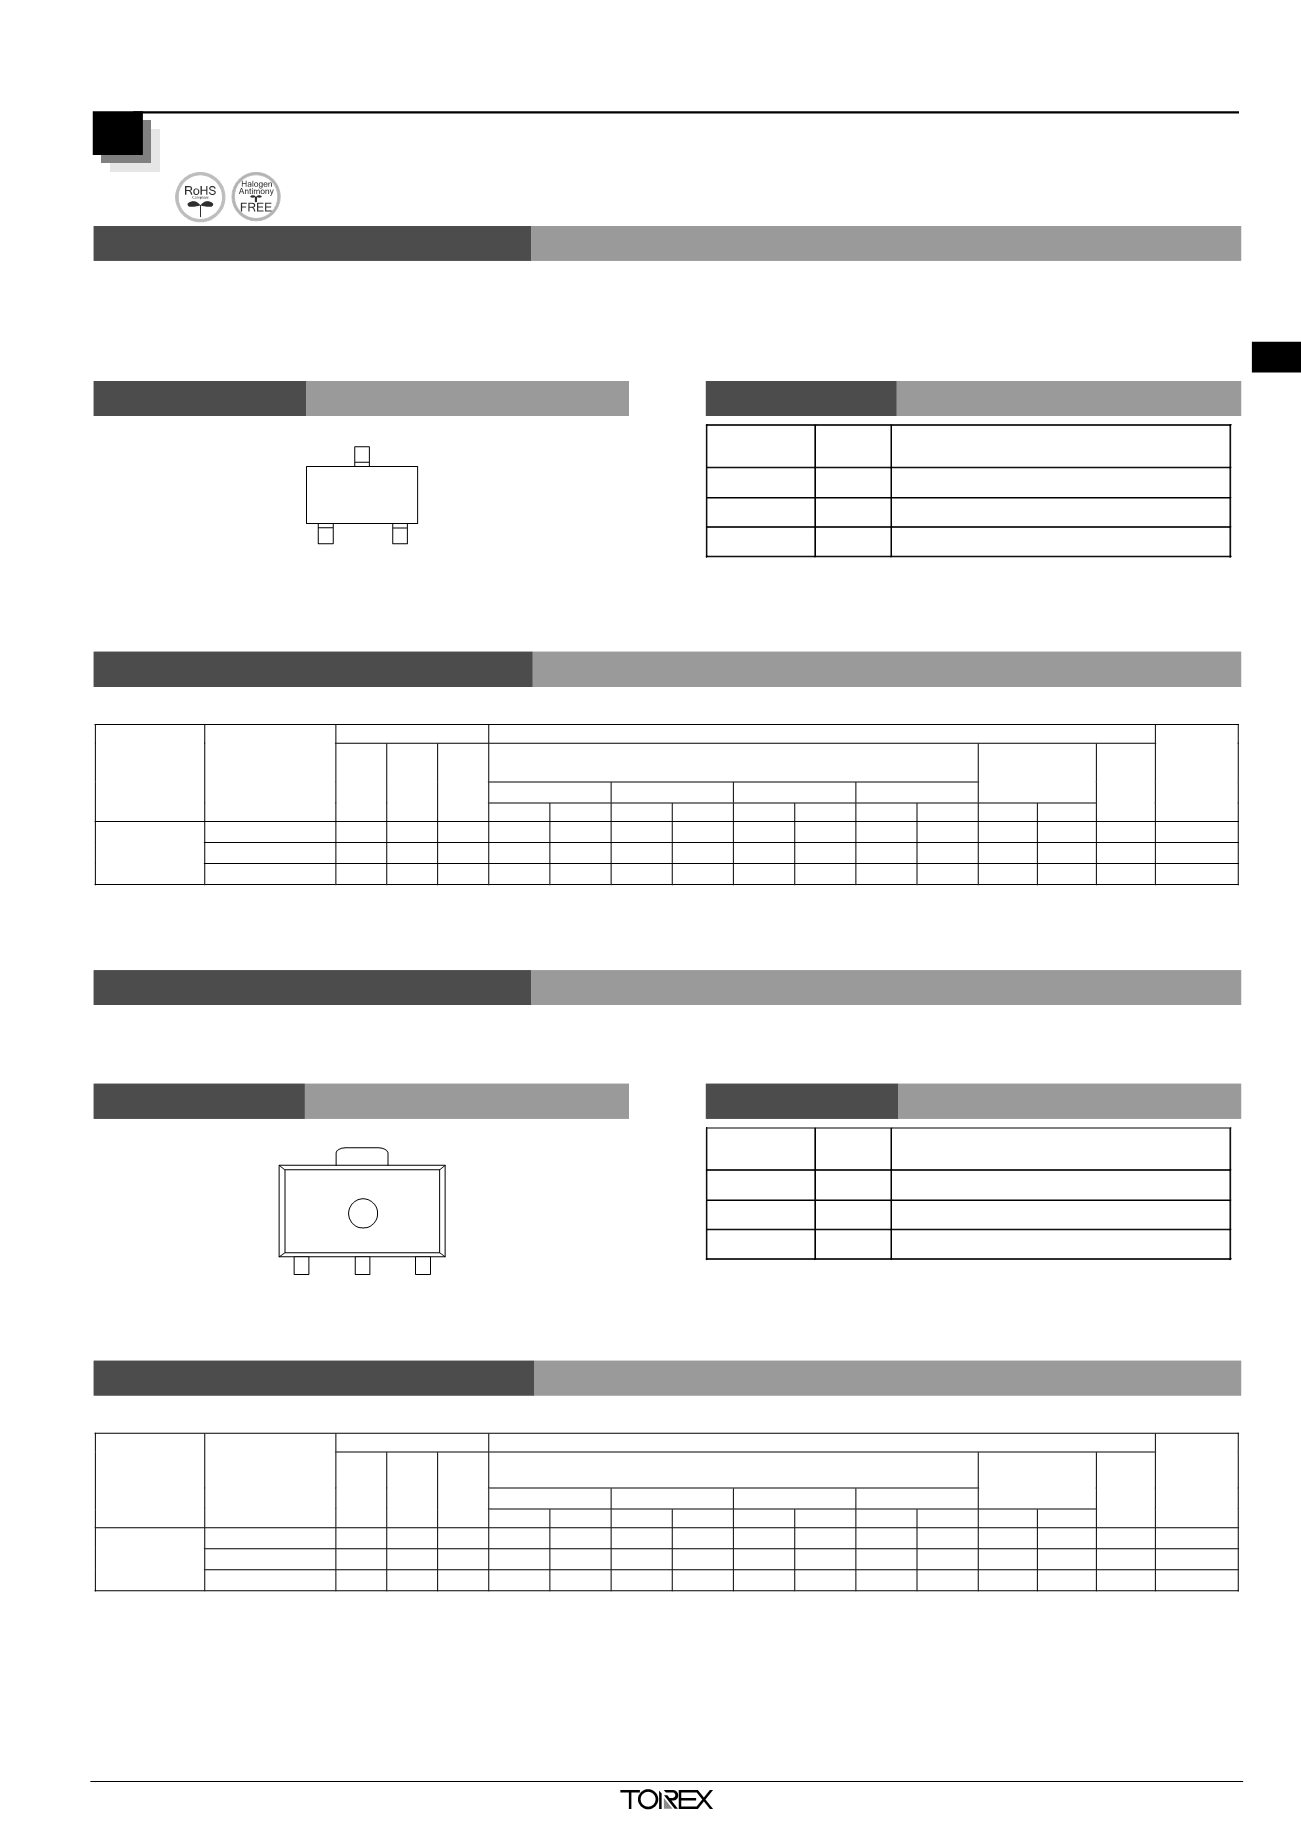 Short Form 2015 Double Diffused Mos Dmos Page 59